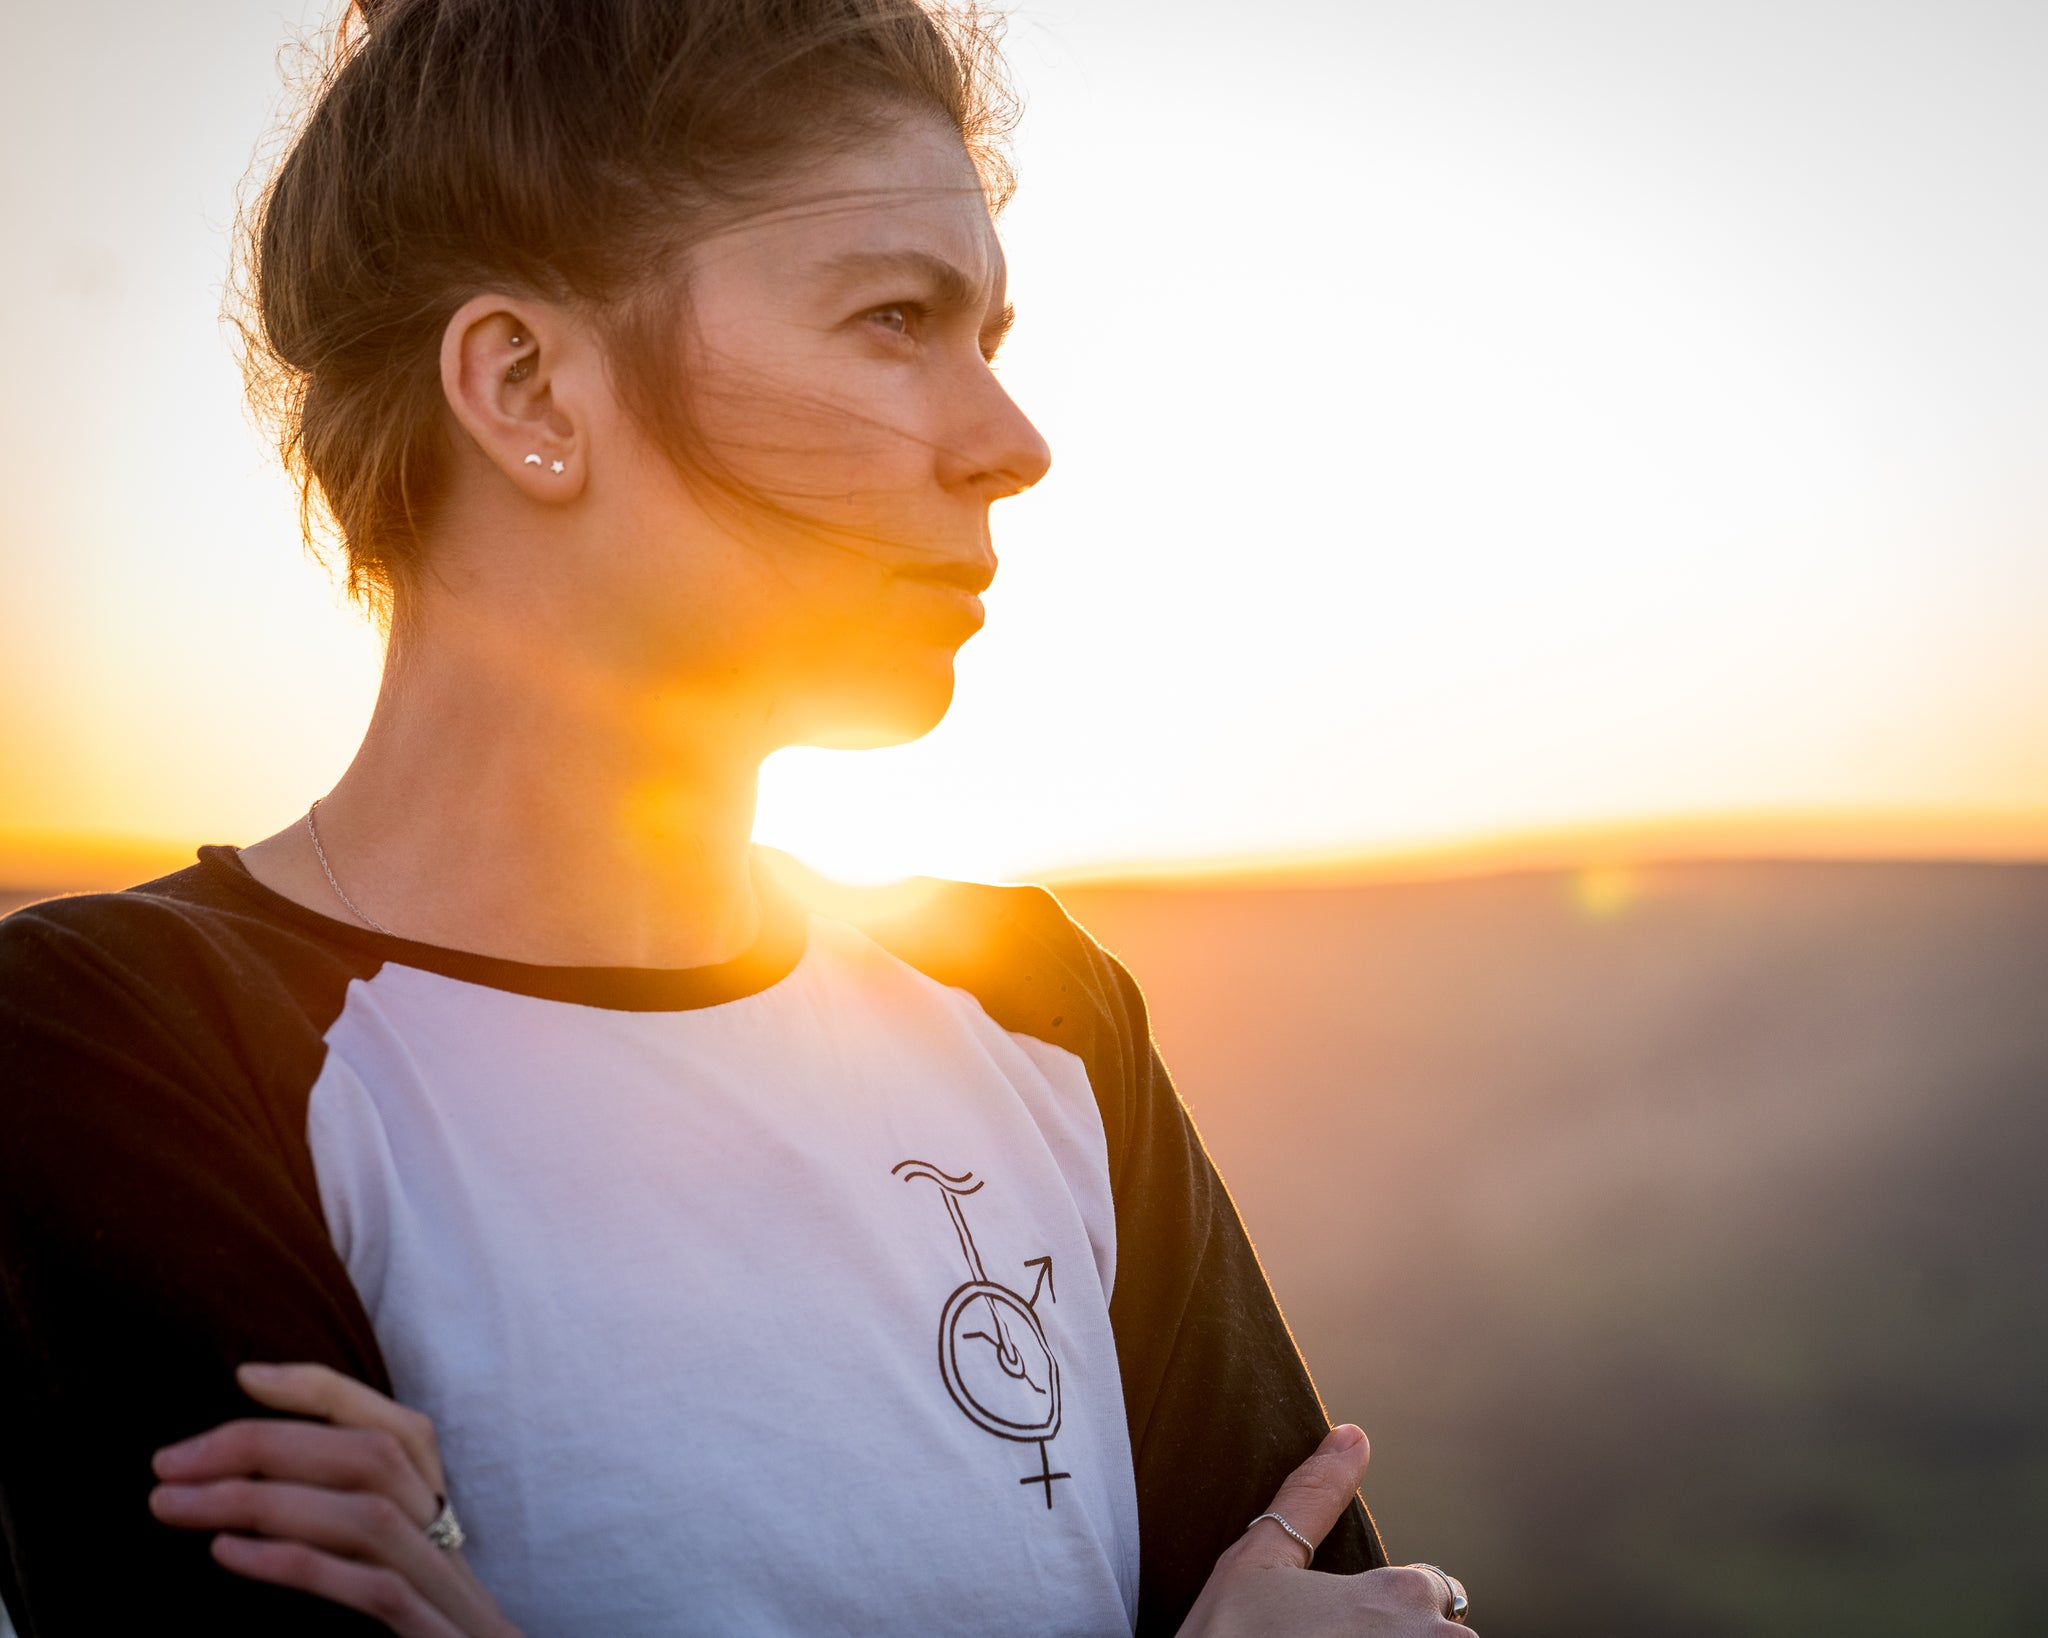 Unicycle baseball t-shirt sunset picture female employee looking powerful into the distance